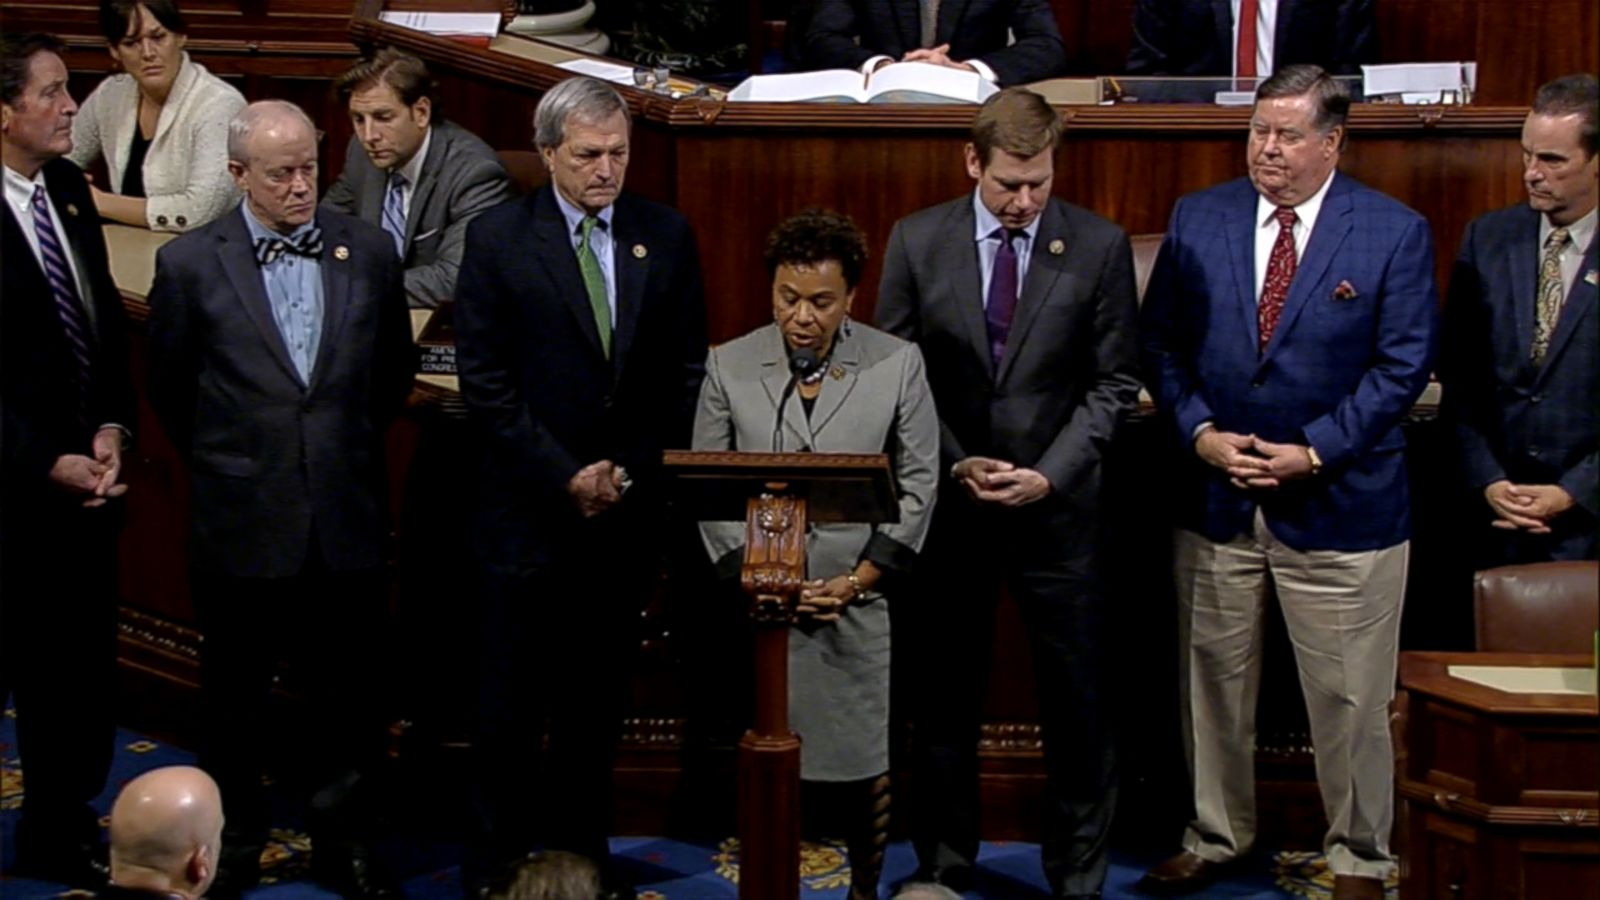 VIDEO: Rep. Barbara Lee led the moment of silence to recognize the 36 lives lost in Oakland, California.